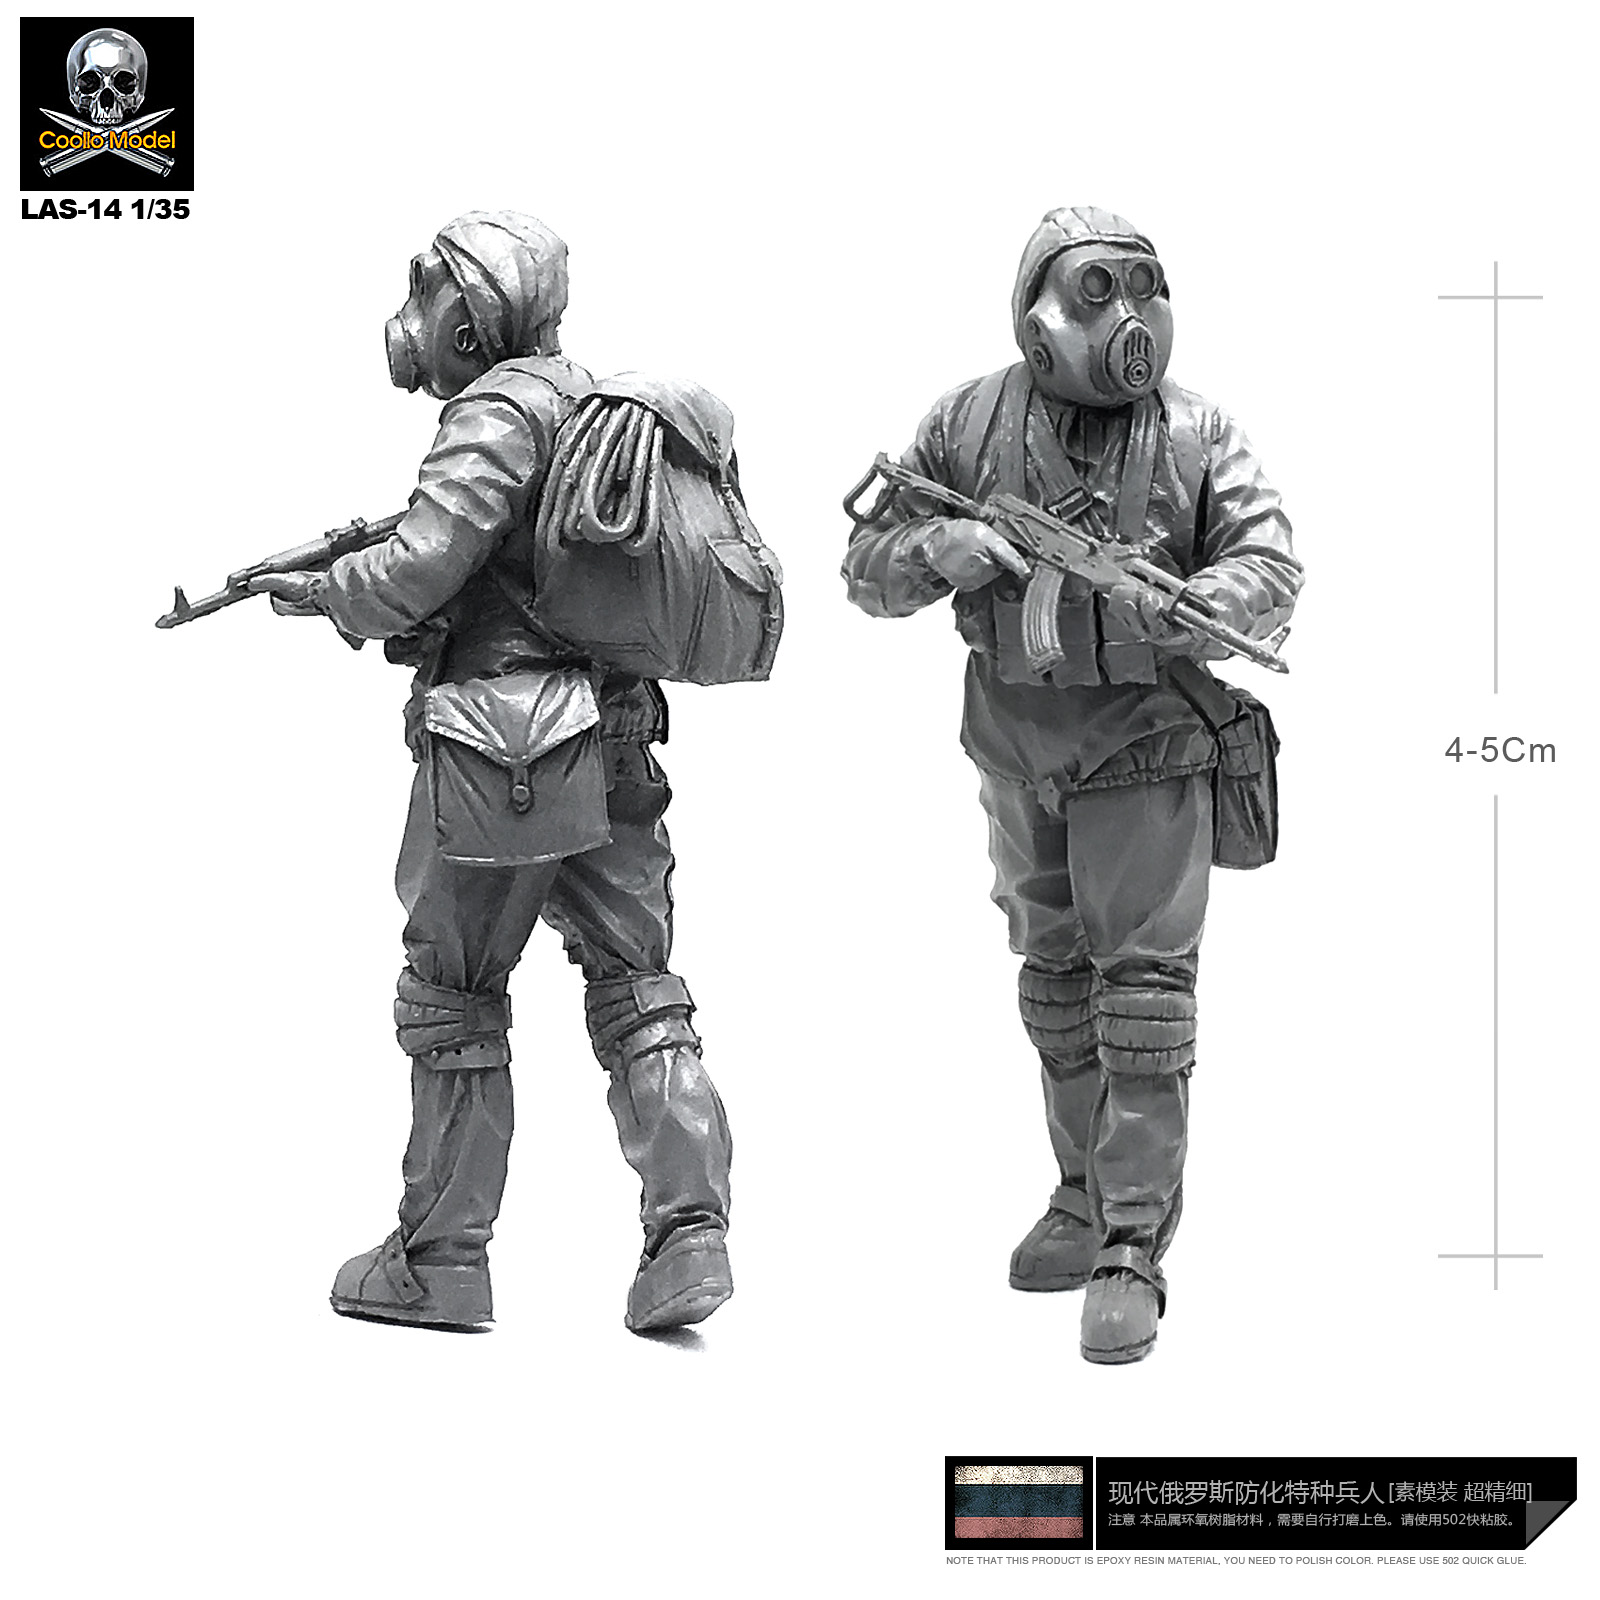 Yufan Model  1/35 Russian Biochemical Force 1 Drag Resin Soldier Las-14